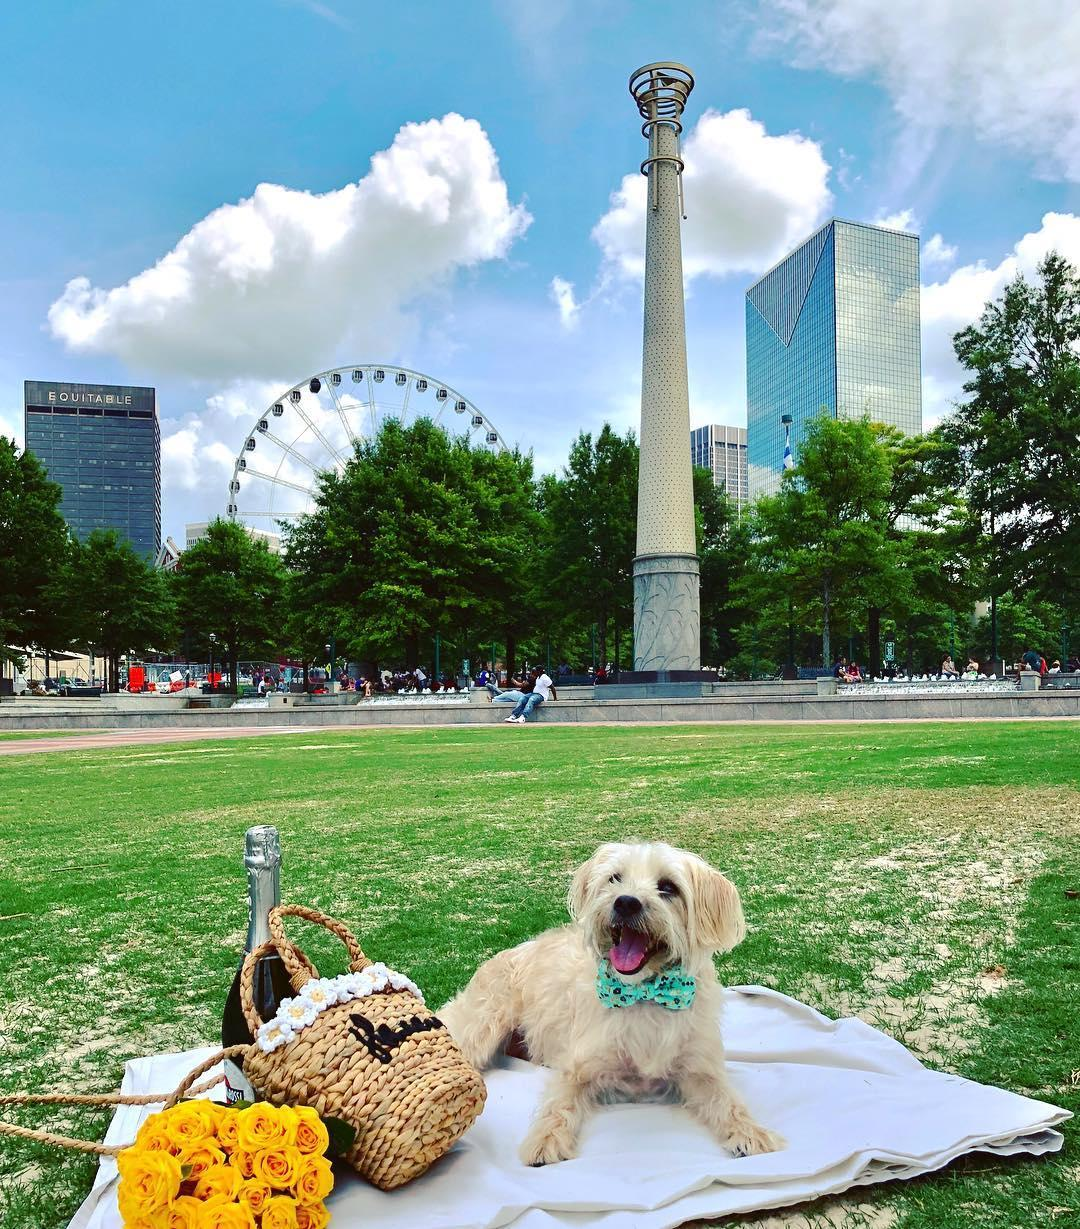 Stroll to Centennial Olympic Park for a dog-friendly walking tour of the 22-acre urban greenspace.